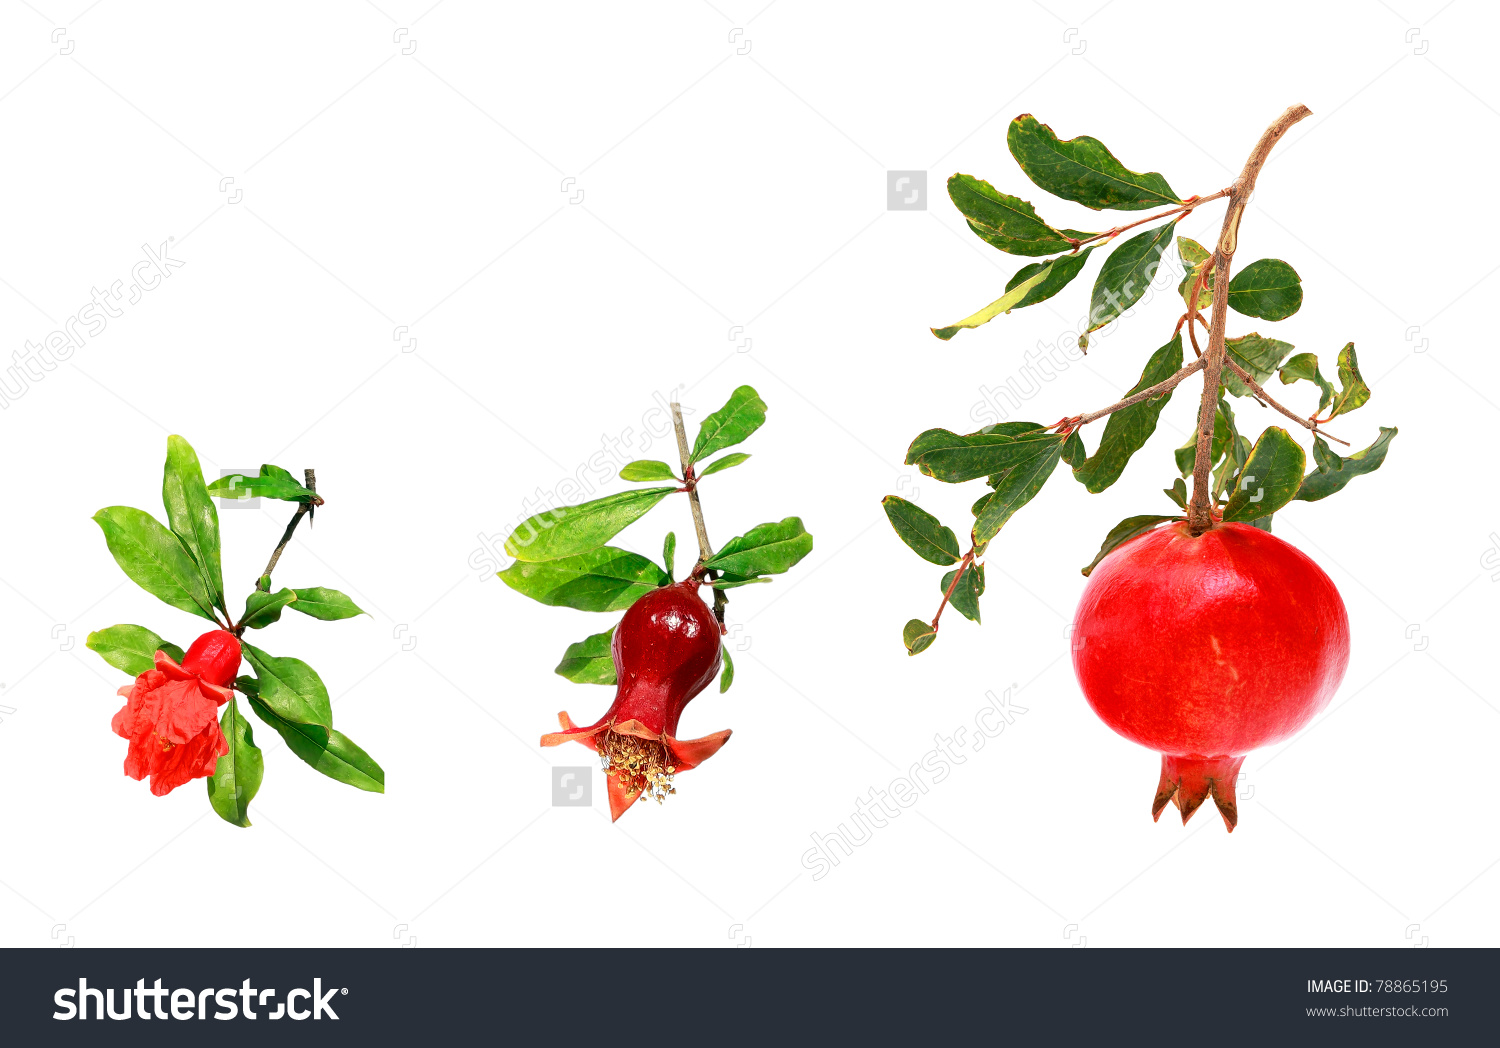 Three Stages Development Pomegranate From Flower Stock Photo.